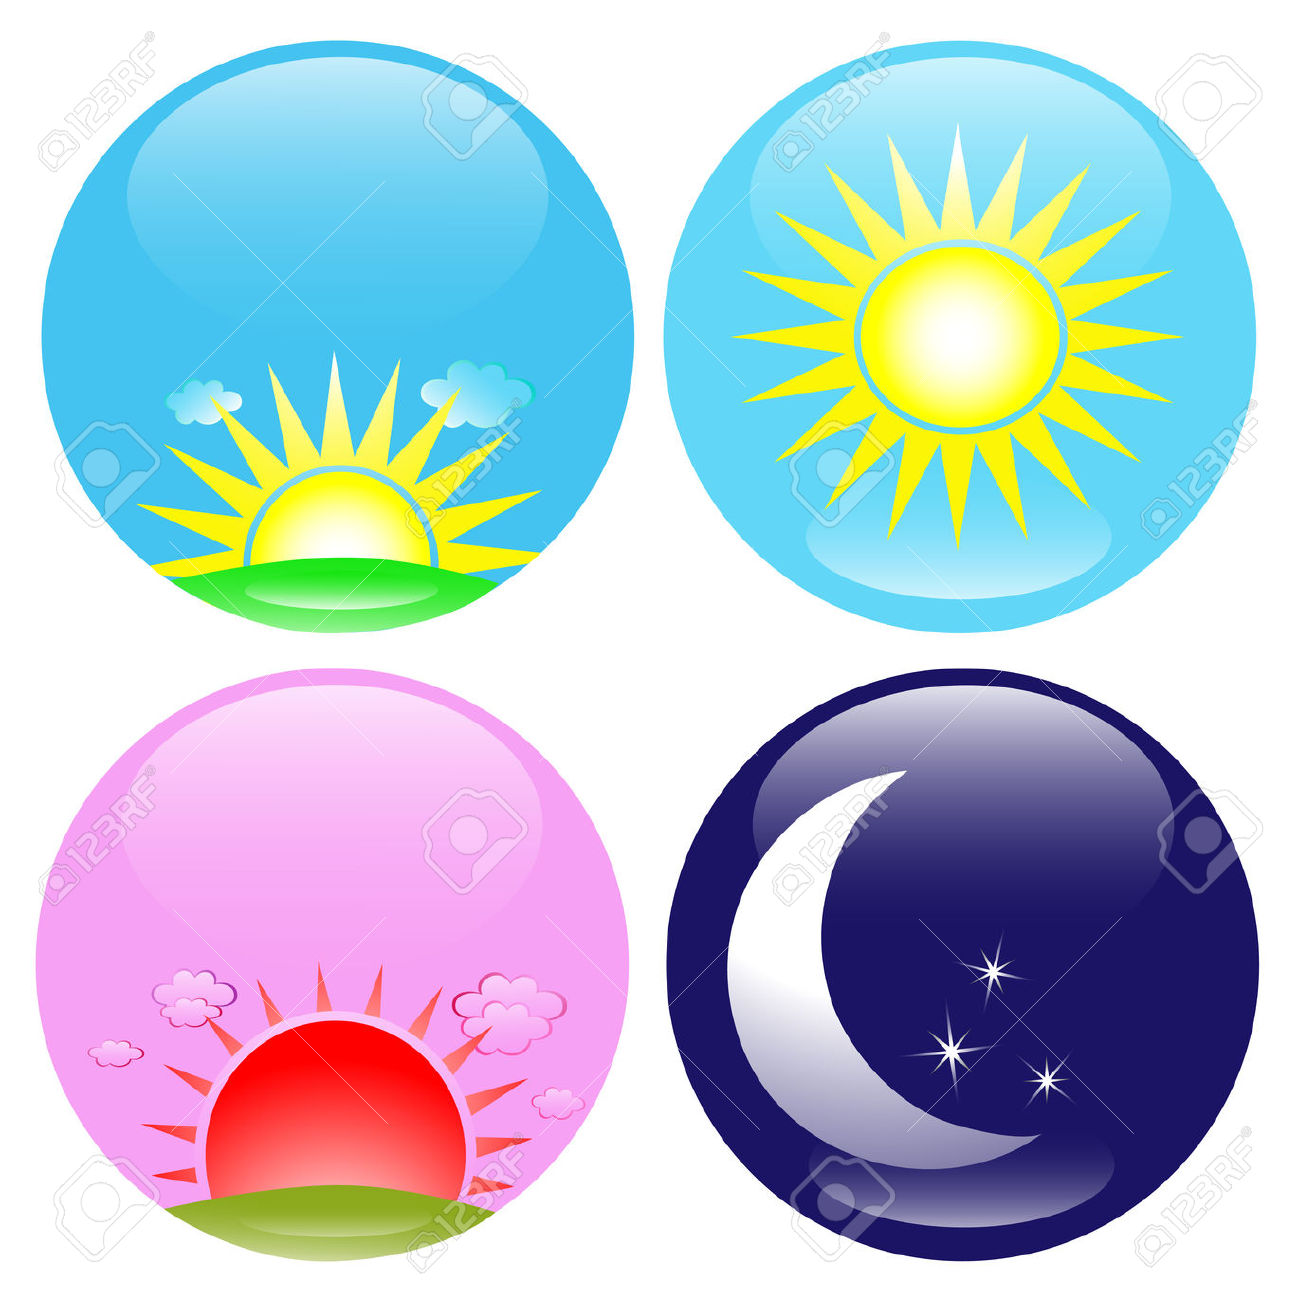 png free library Weekend clipart sunrise sunset. Service free download best